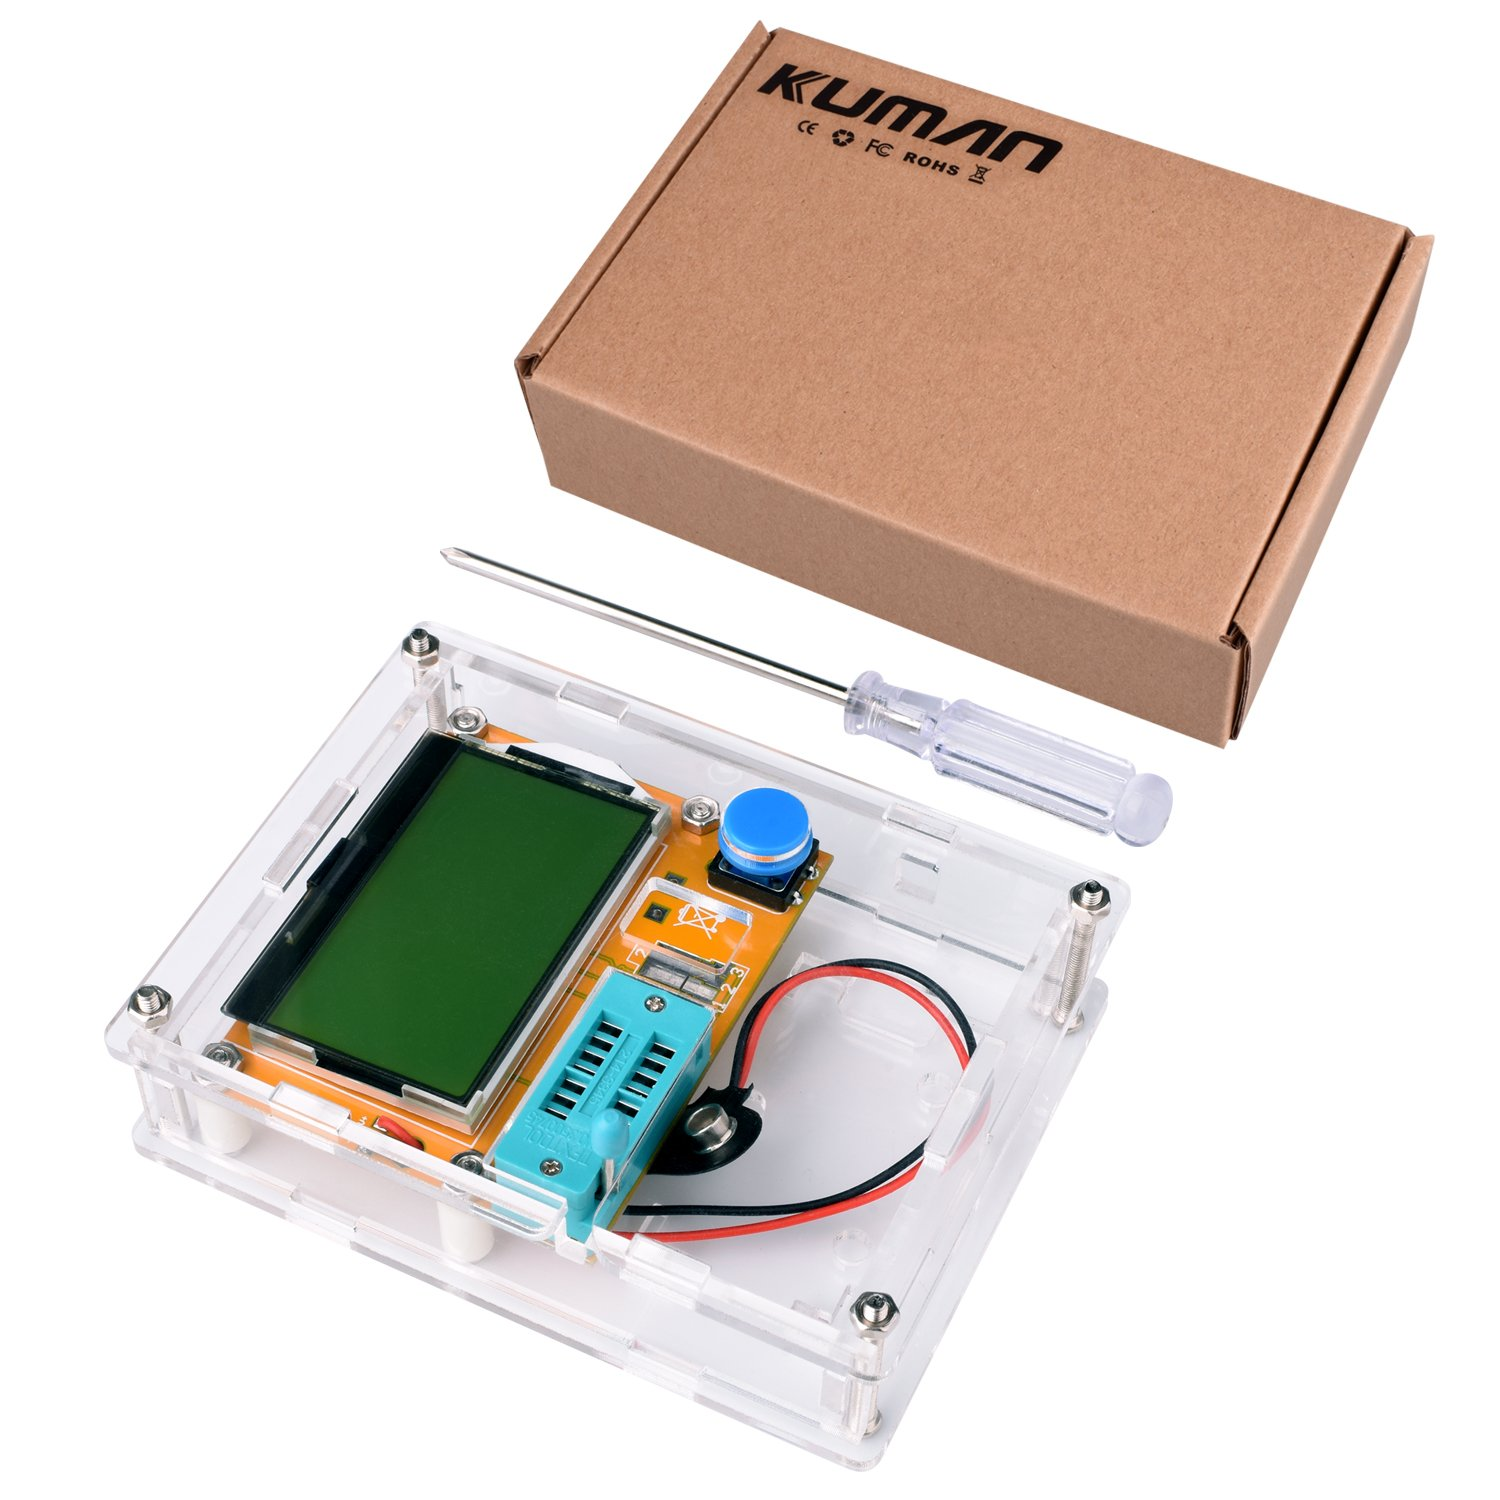 Multifunction Meter DIY kit, kuman Mega 328 Graphic transistor Tester, NPN PNP Diodes Triode Capacitor ESR SCR MOSFET Resistor Inductance LCD Display Checker with case and screwdriver K77 by Kuman (Image #6)